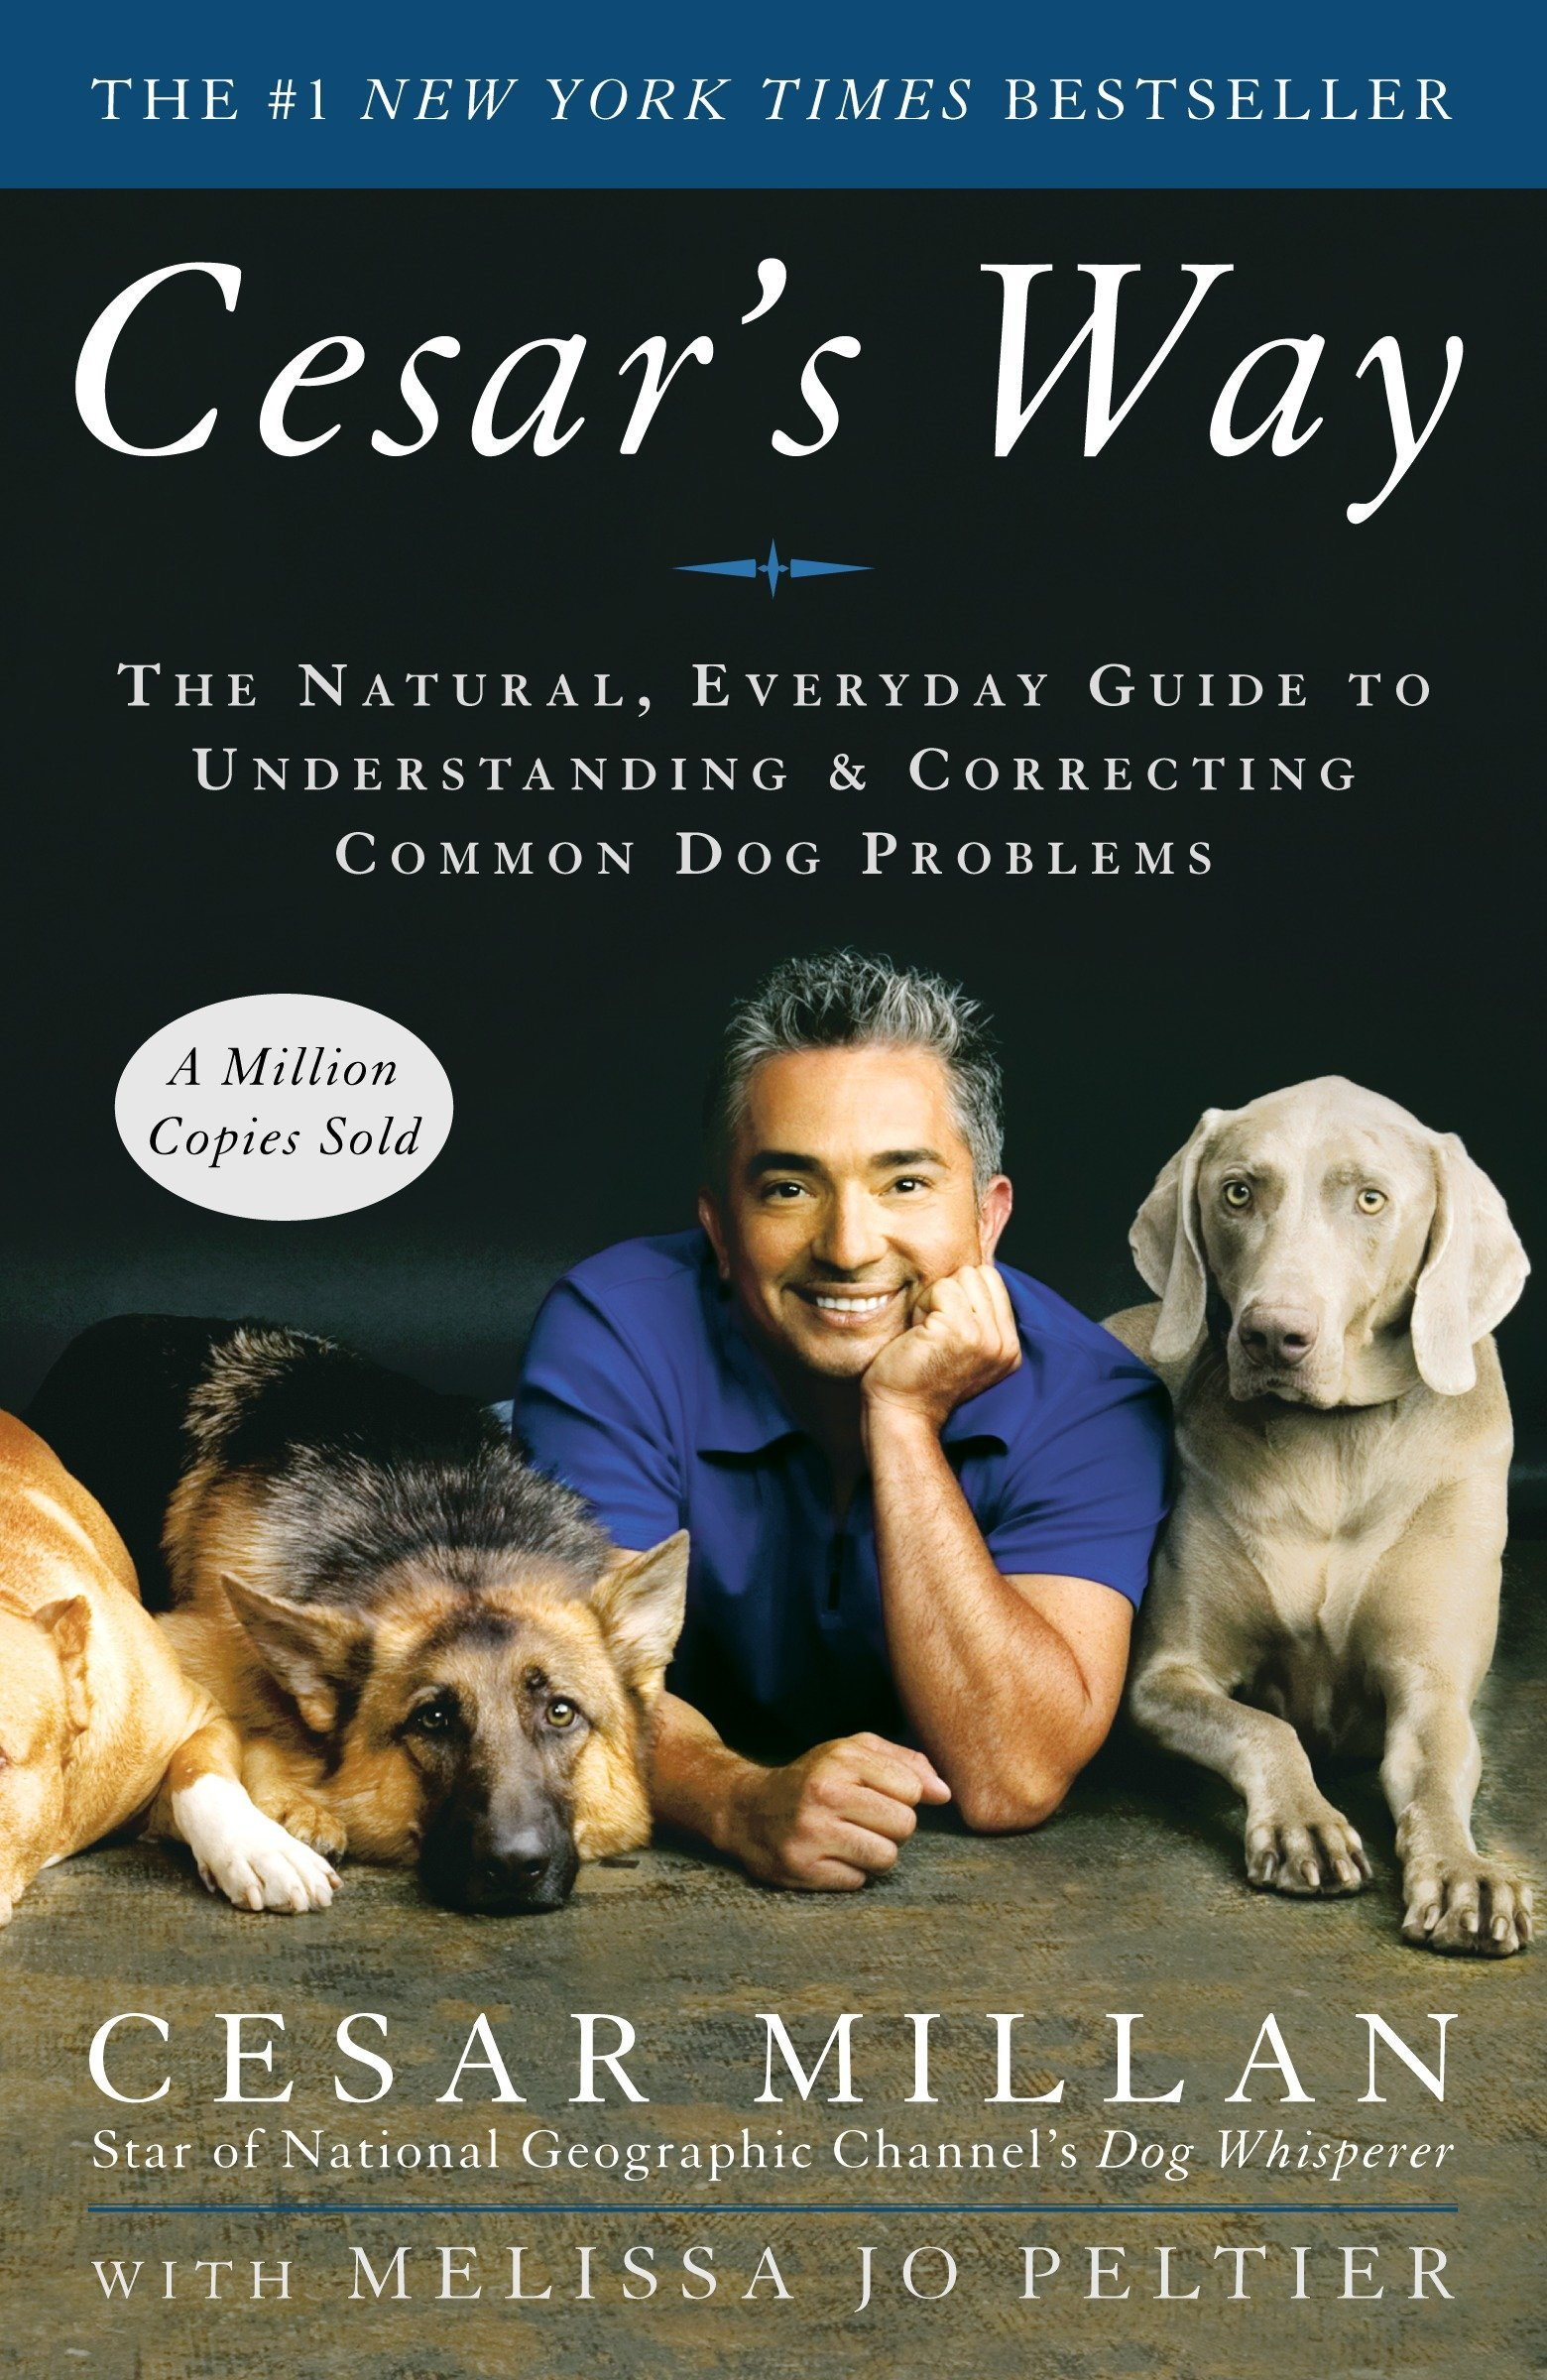 Cesar's Way: The Natural, Everyday Guide to Understanding & Correcting Common Dog Problems by Random House